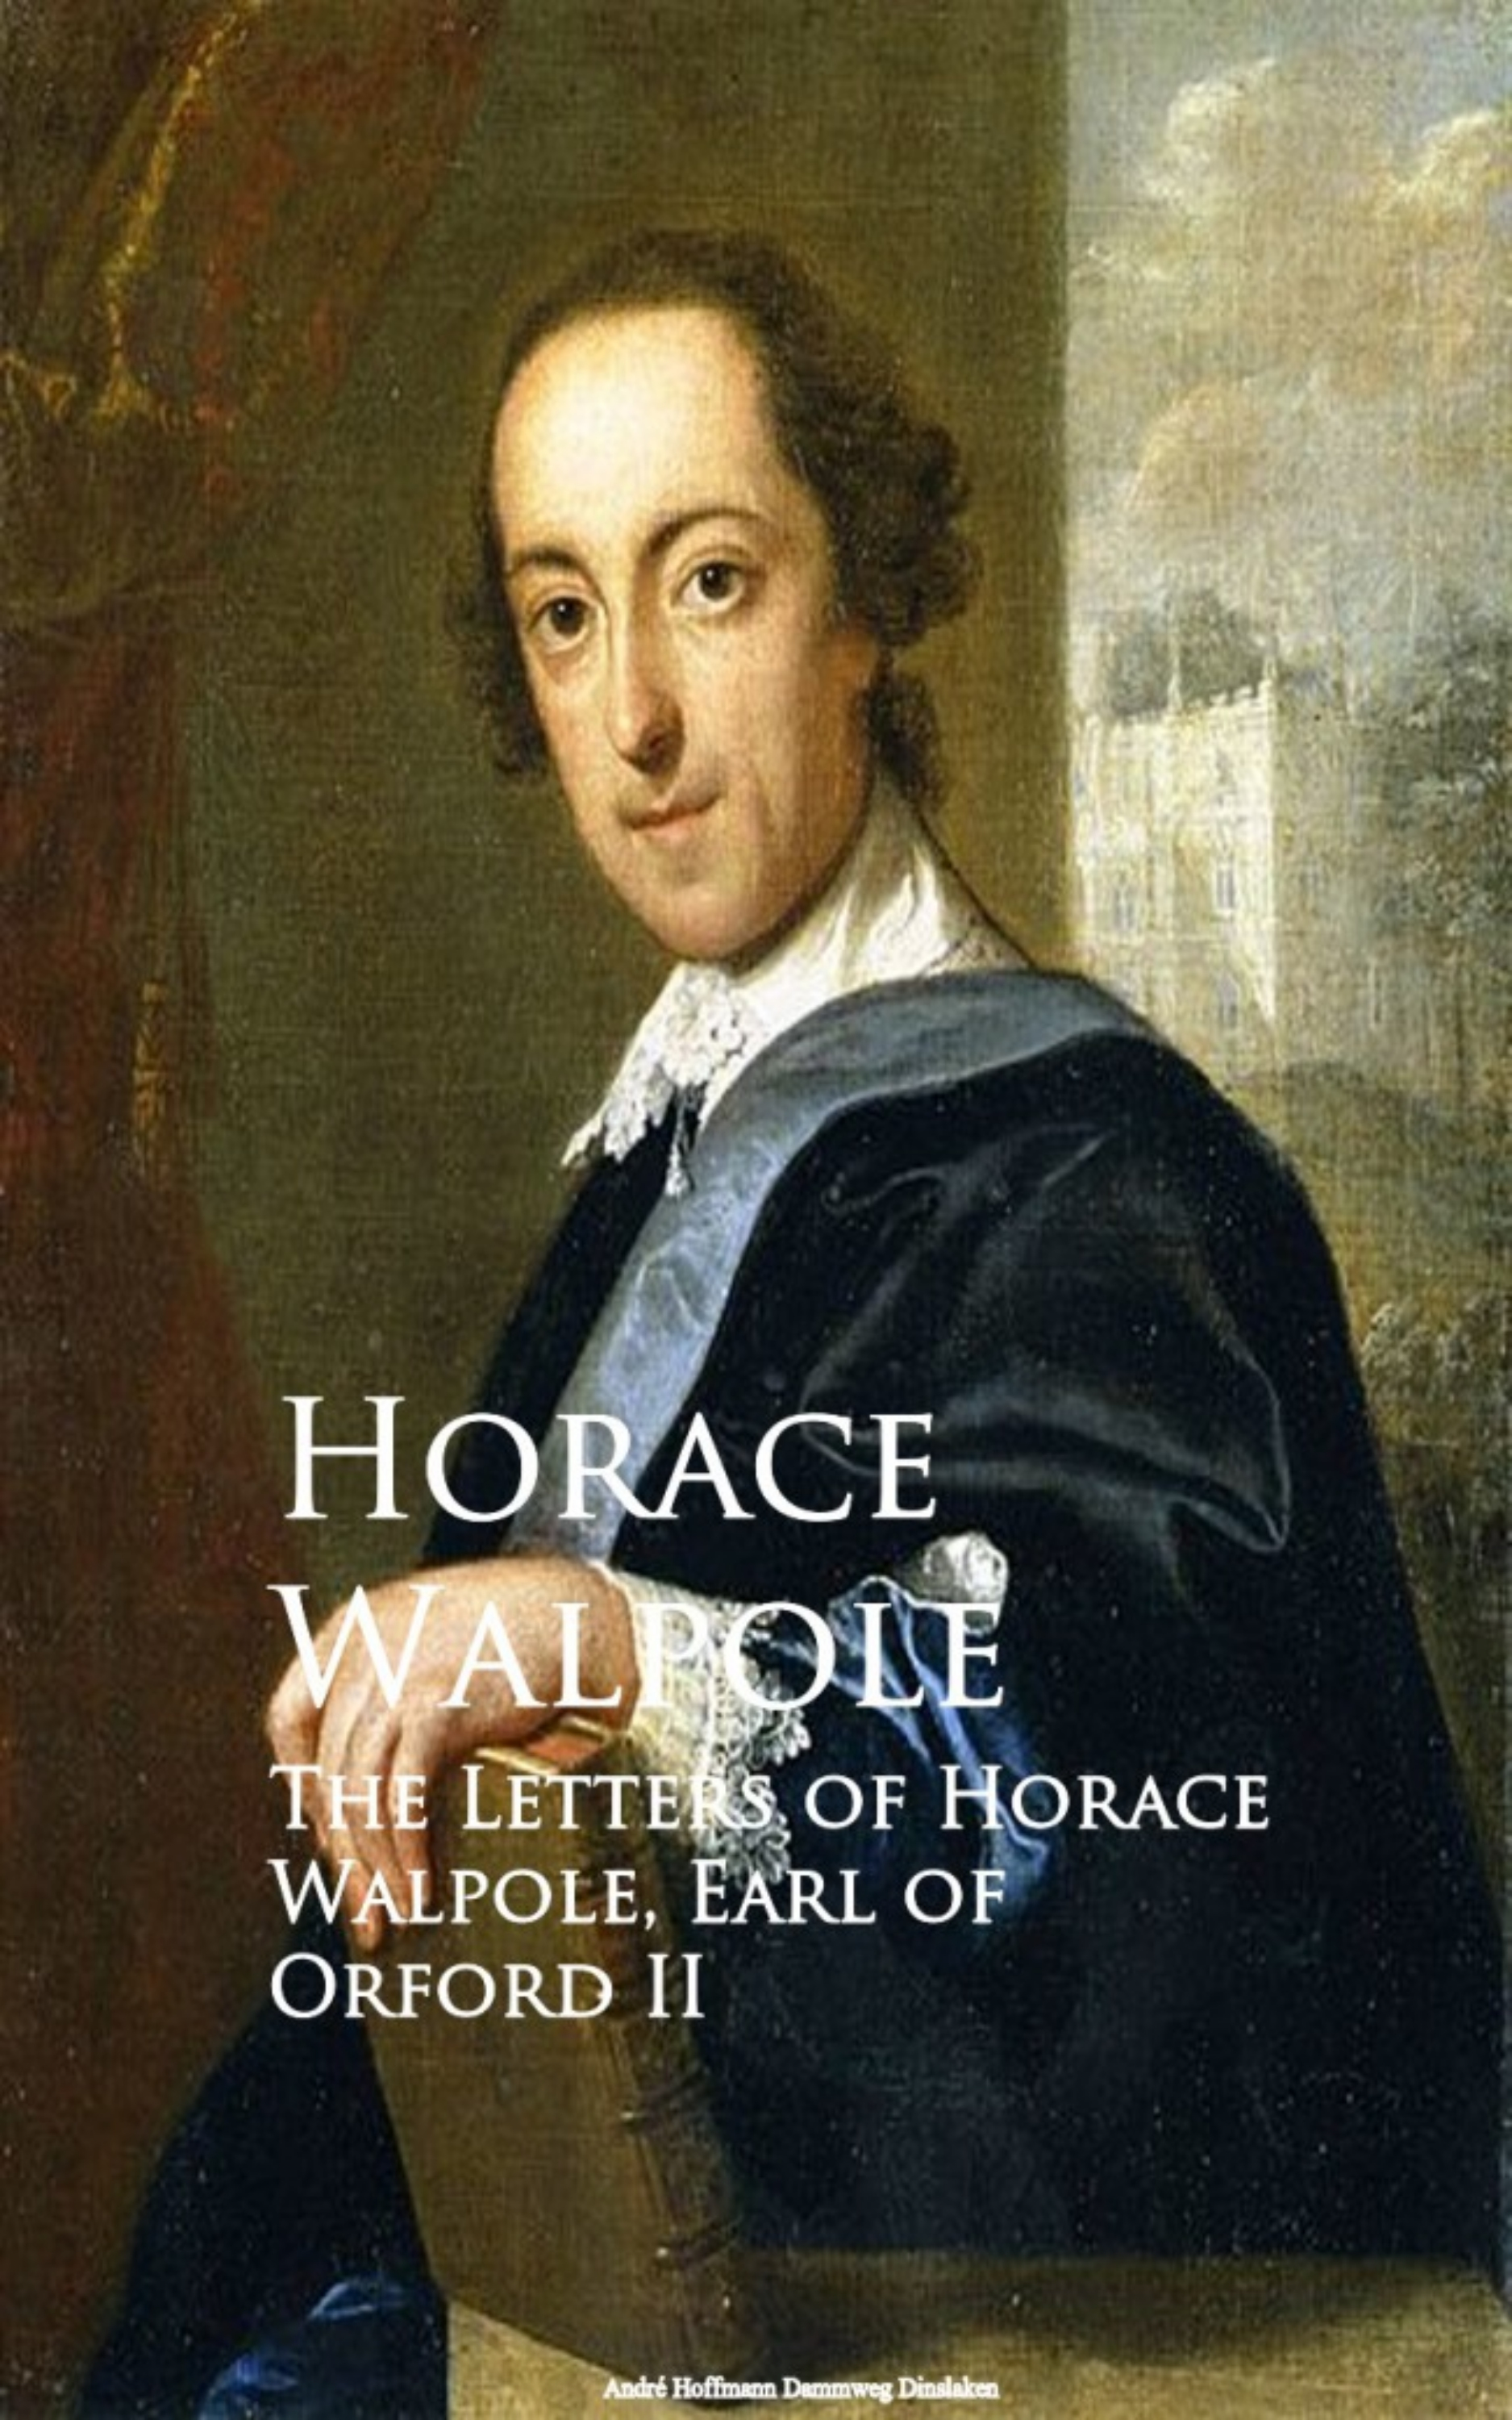 Horace Walpole The Letters of Horace Walpole, Earl of Orford II fletcher horace a b c of snap shooting